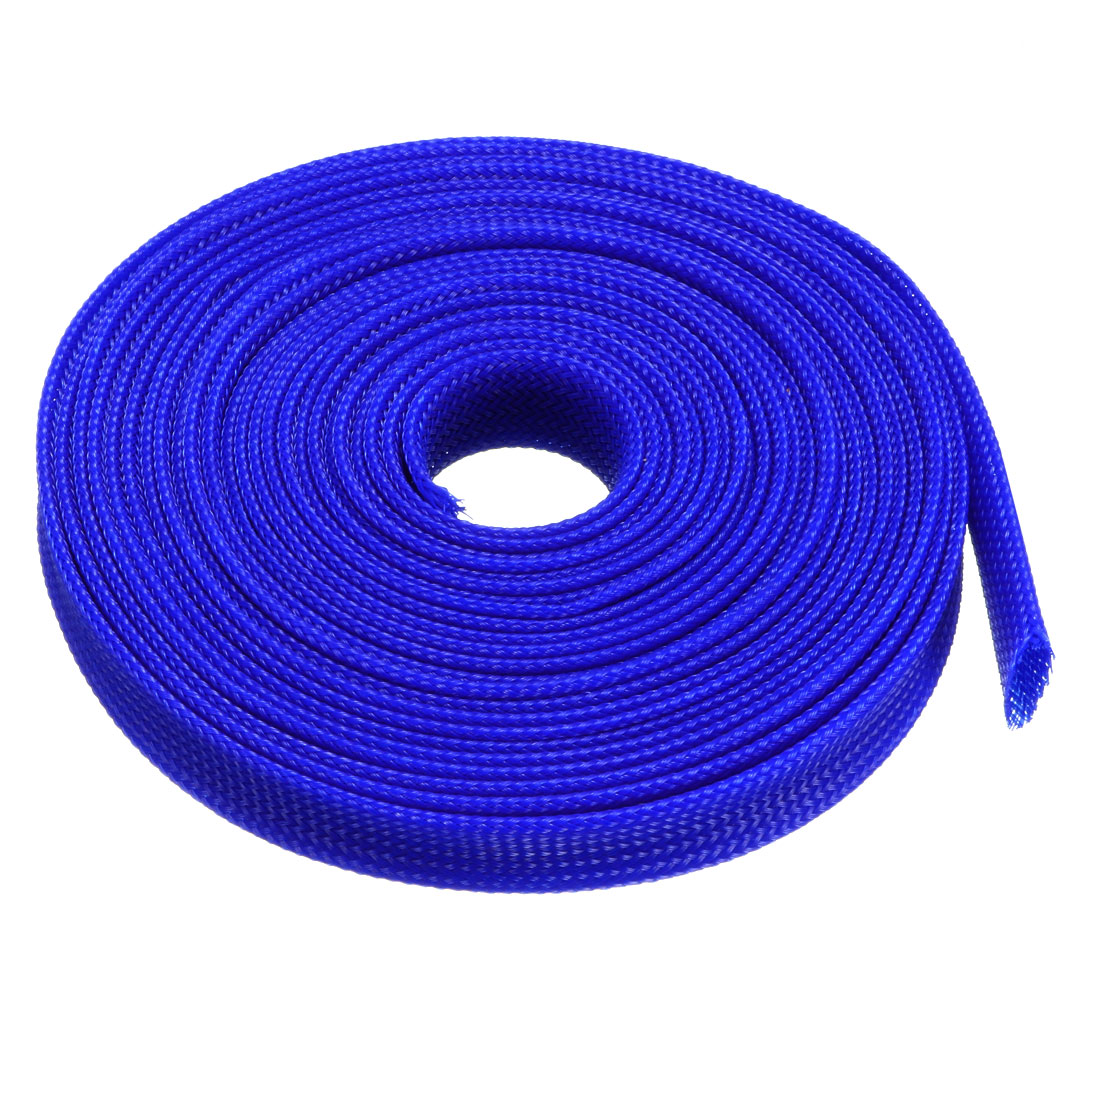 14mm Dia Tight Braided PET Expandable Sleeving Cable Wire Wrap Sheath Royalblue 5M